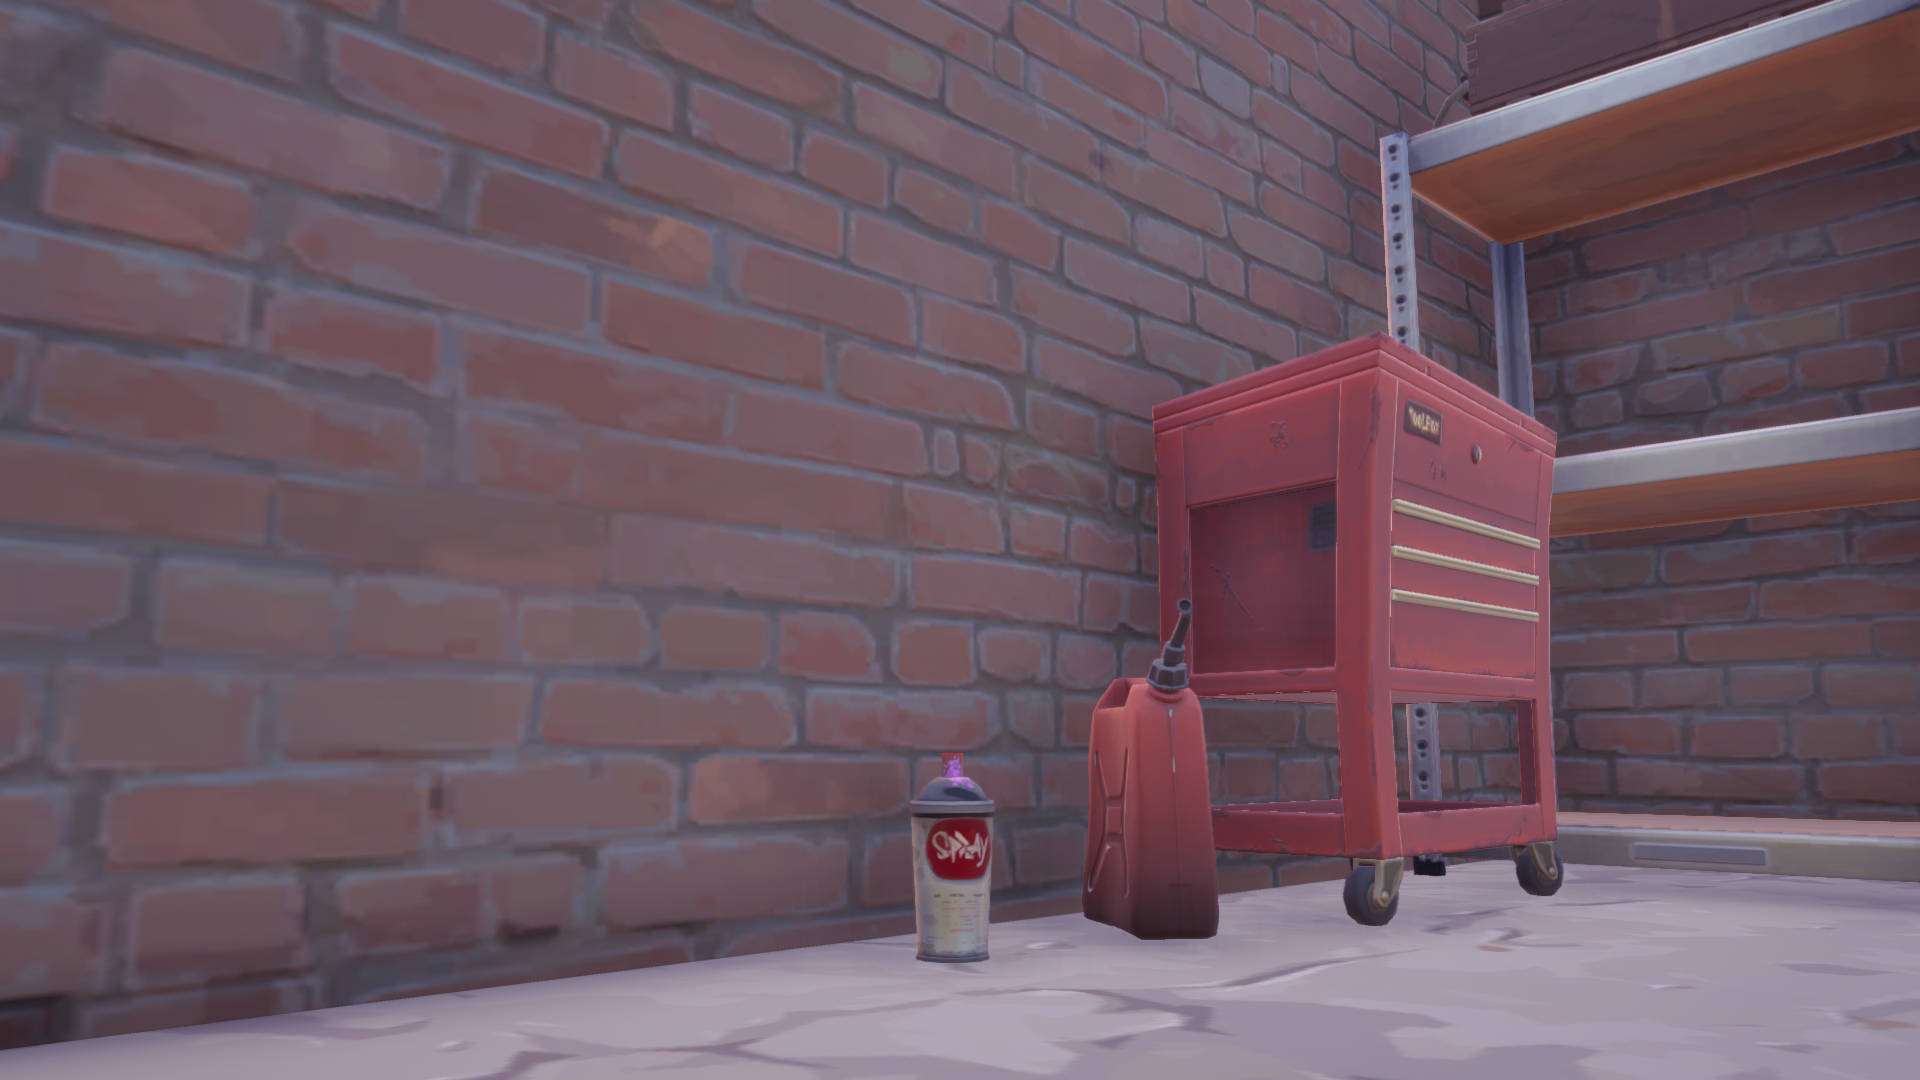 Fortnite – collect spray cans from warehouses in Dirty Docks or garages in Pleasant Park